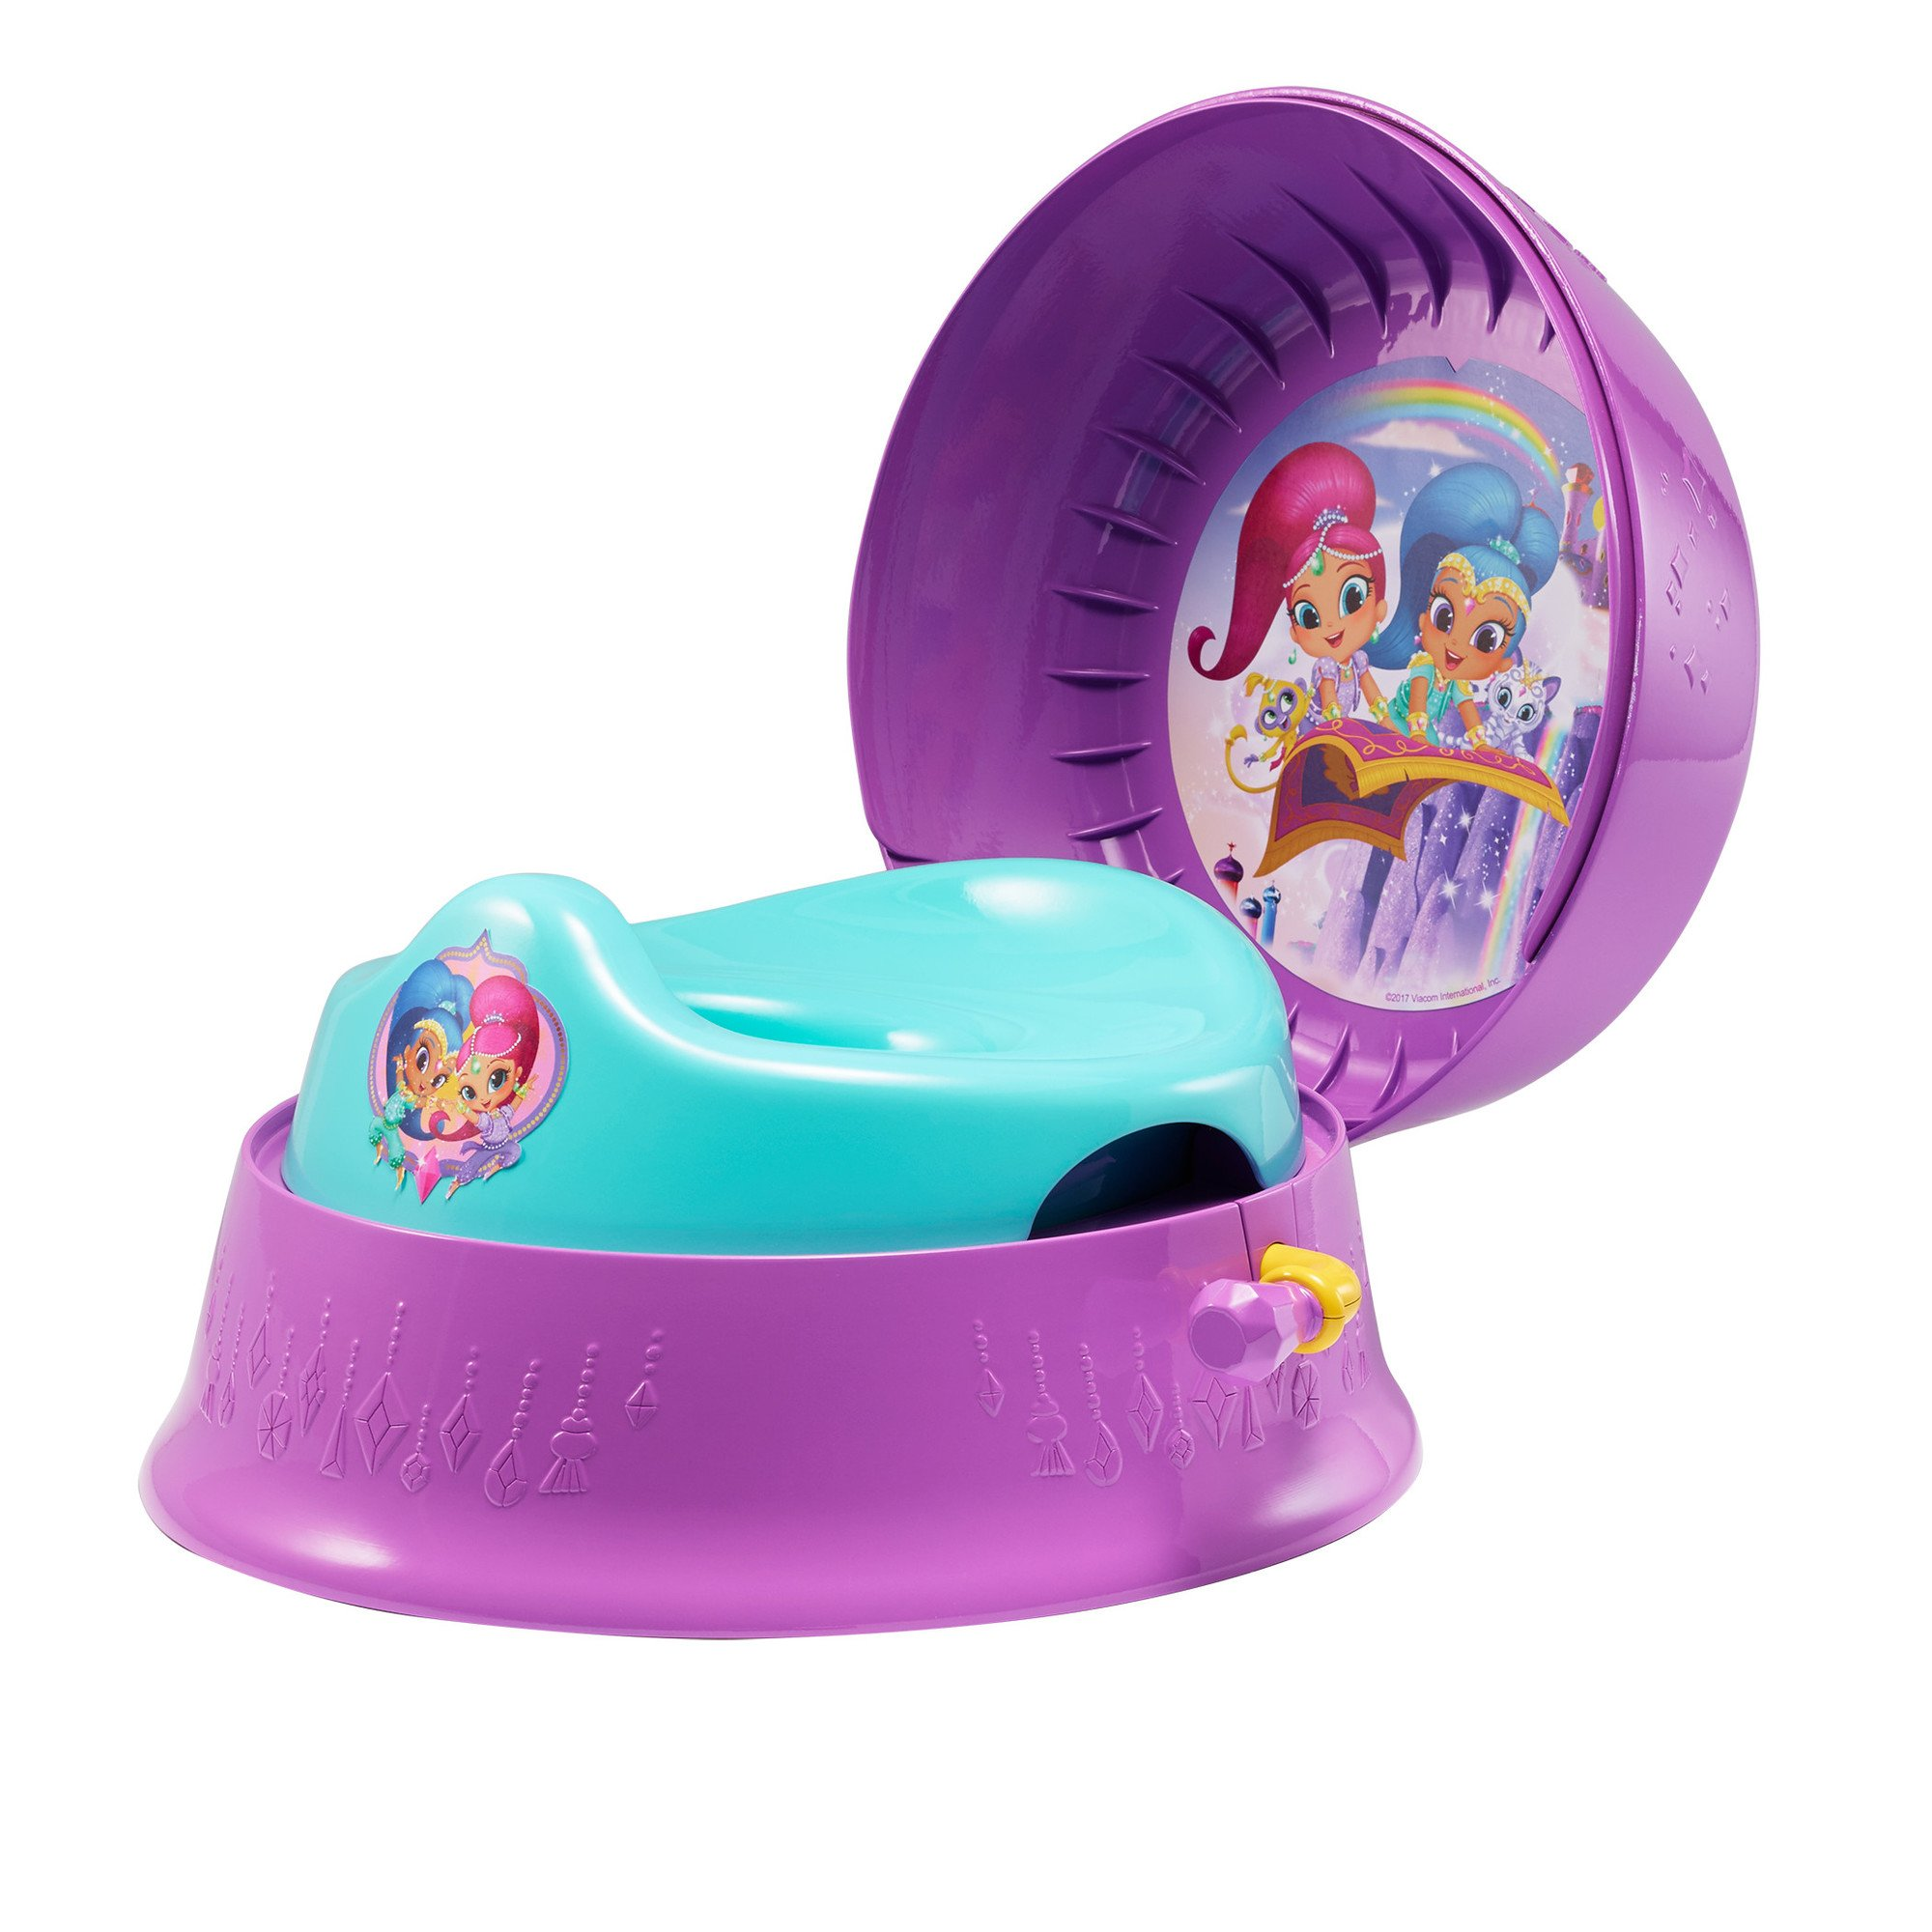 The First Years Nickelodeon Shimmer and Shine 3-in-1 Potty System